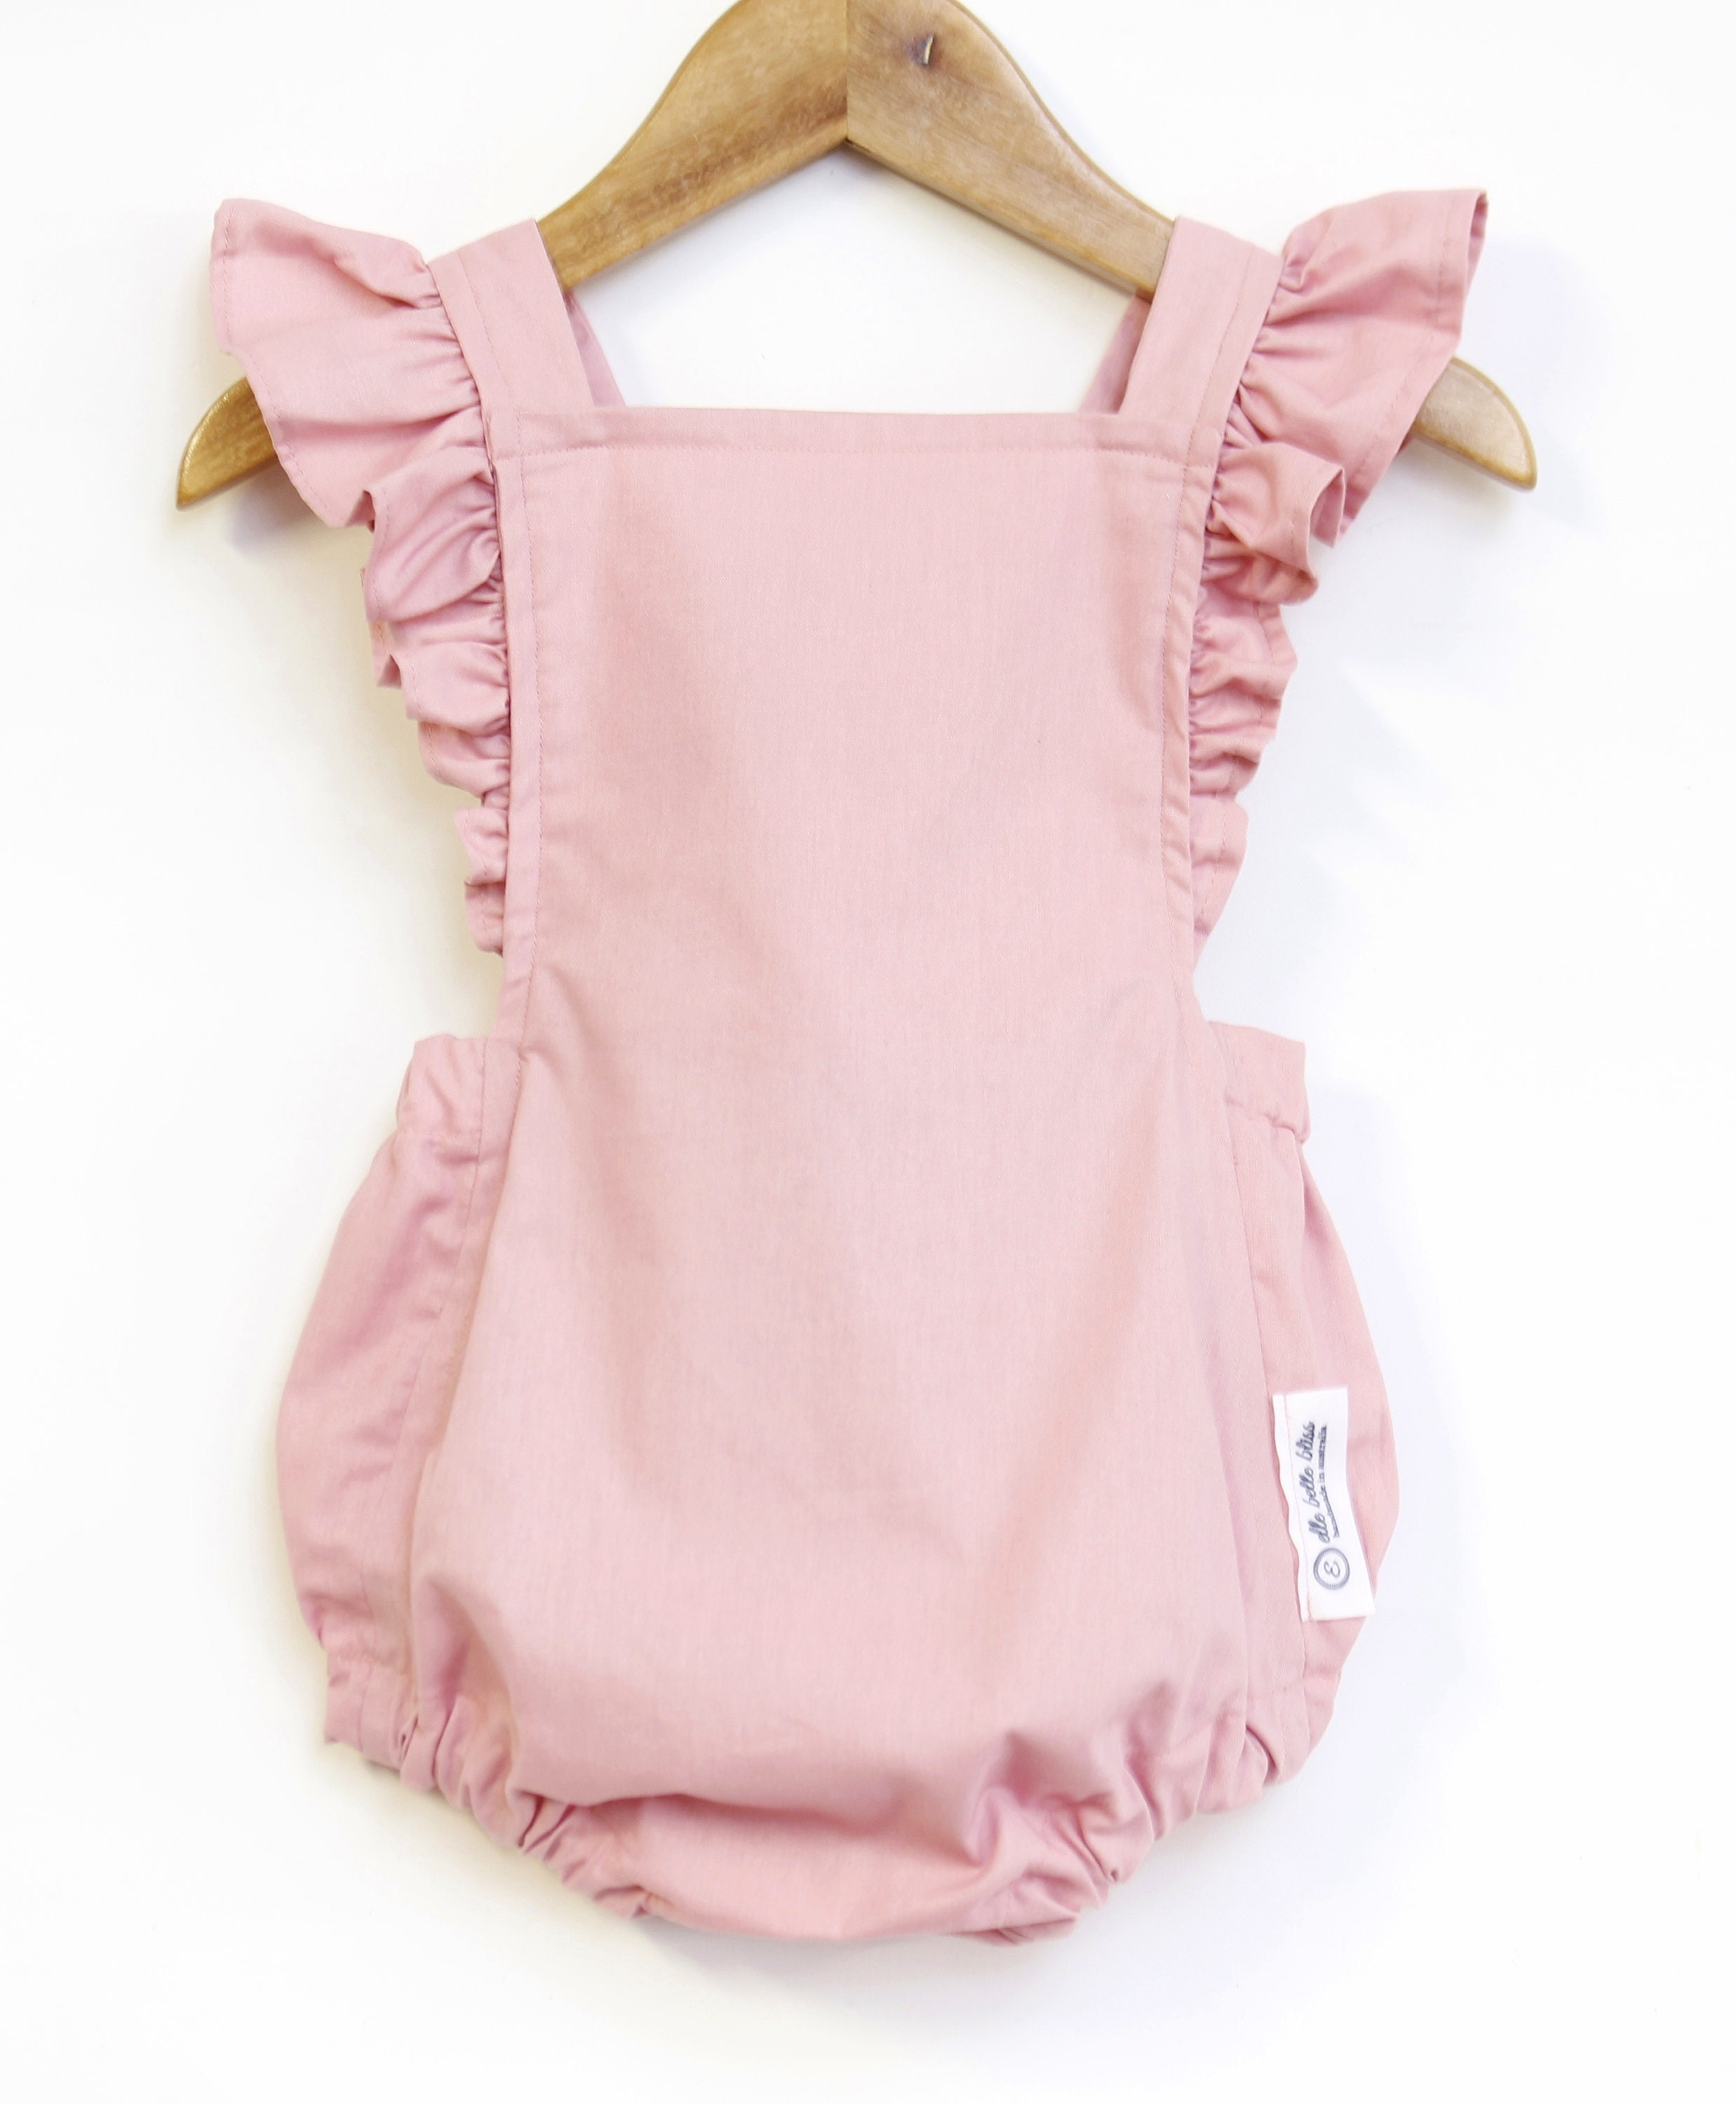 233a0365e9793 Vintage-style Baby Romper Blush Pink Romper Baby Girl | Etsy